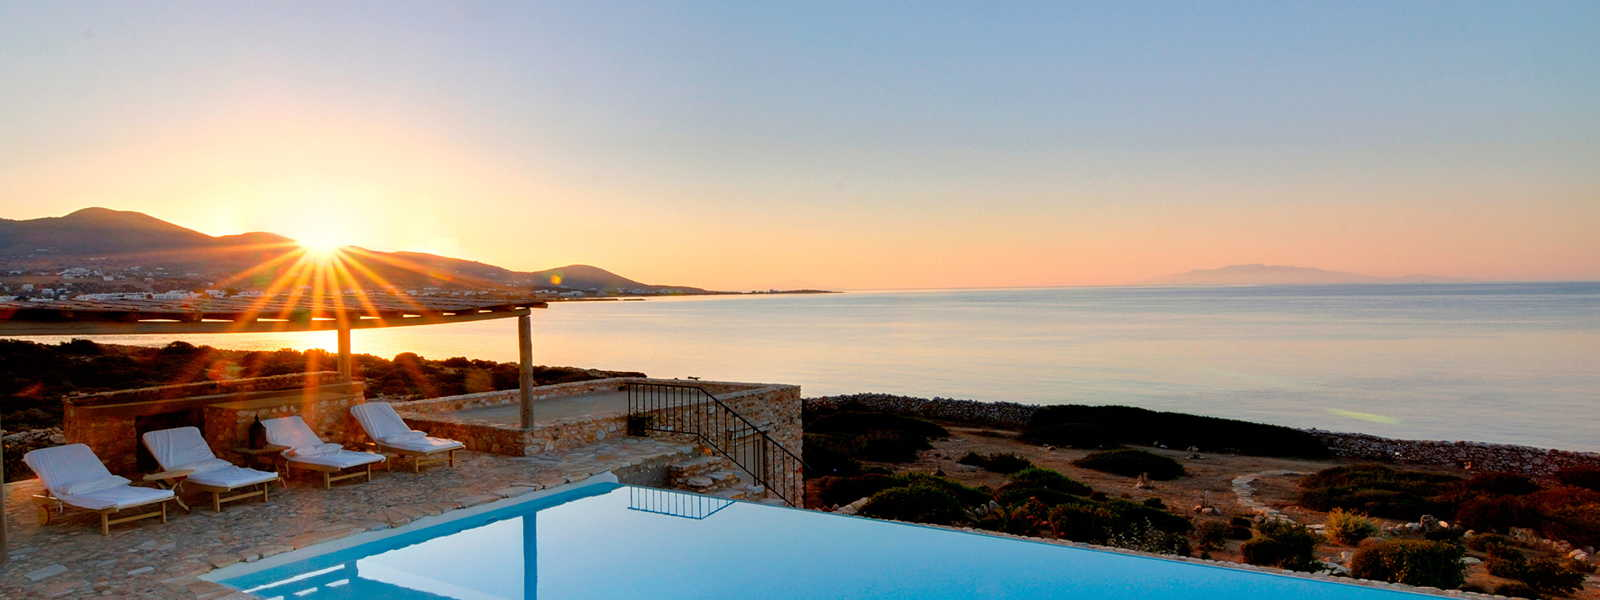 Exclusive holiday homes on Sifnos island